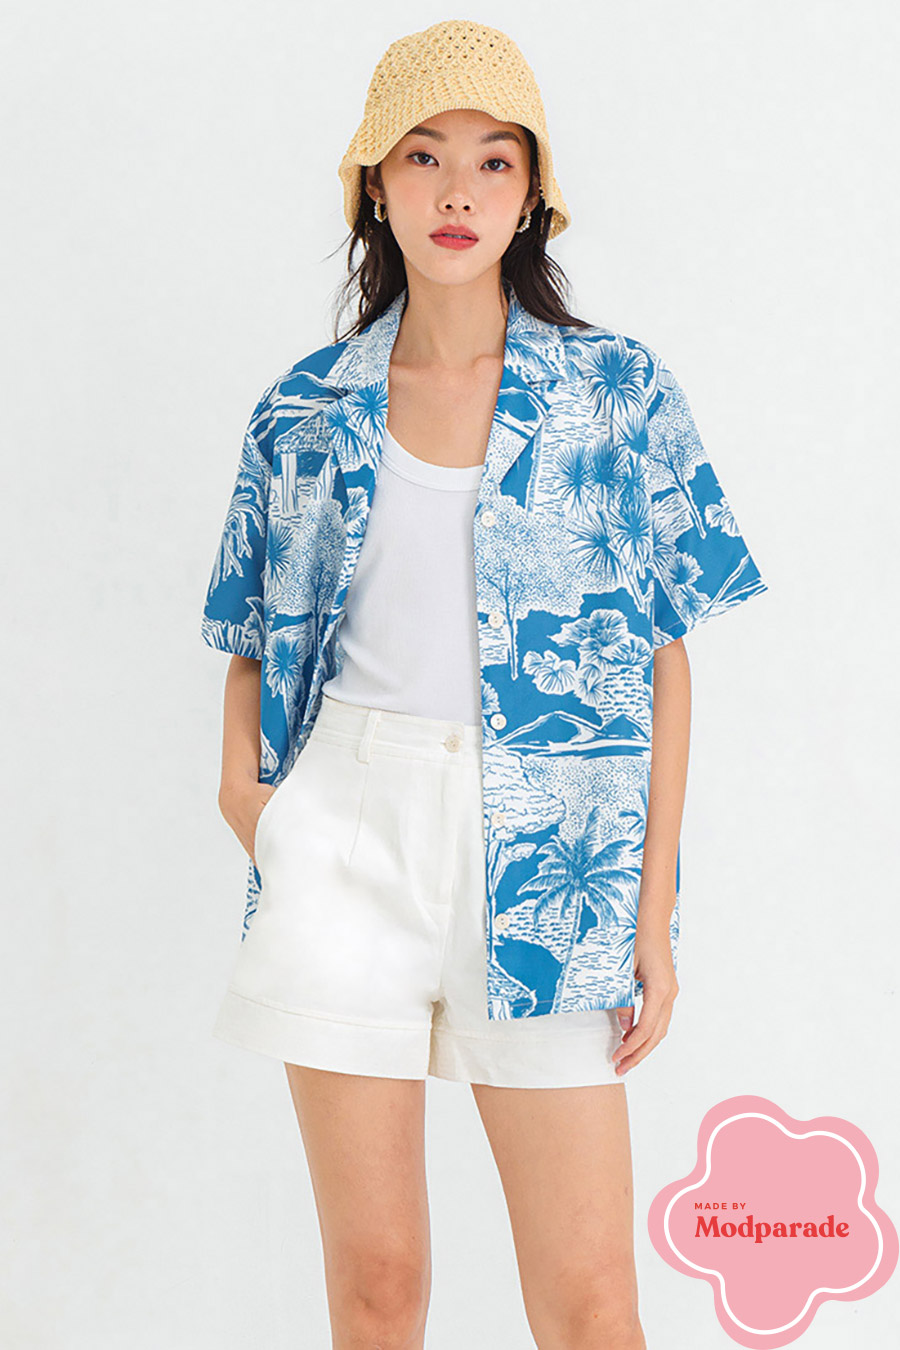 *RESTOCKED* OAKLEIGH TOP - PALM SPRING BLEU [BY MODPARADE]